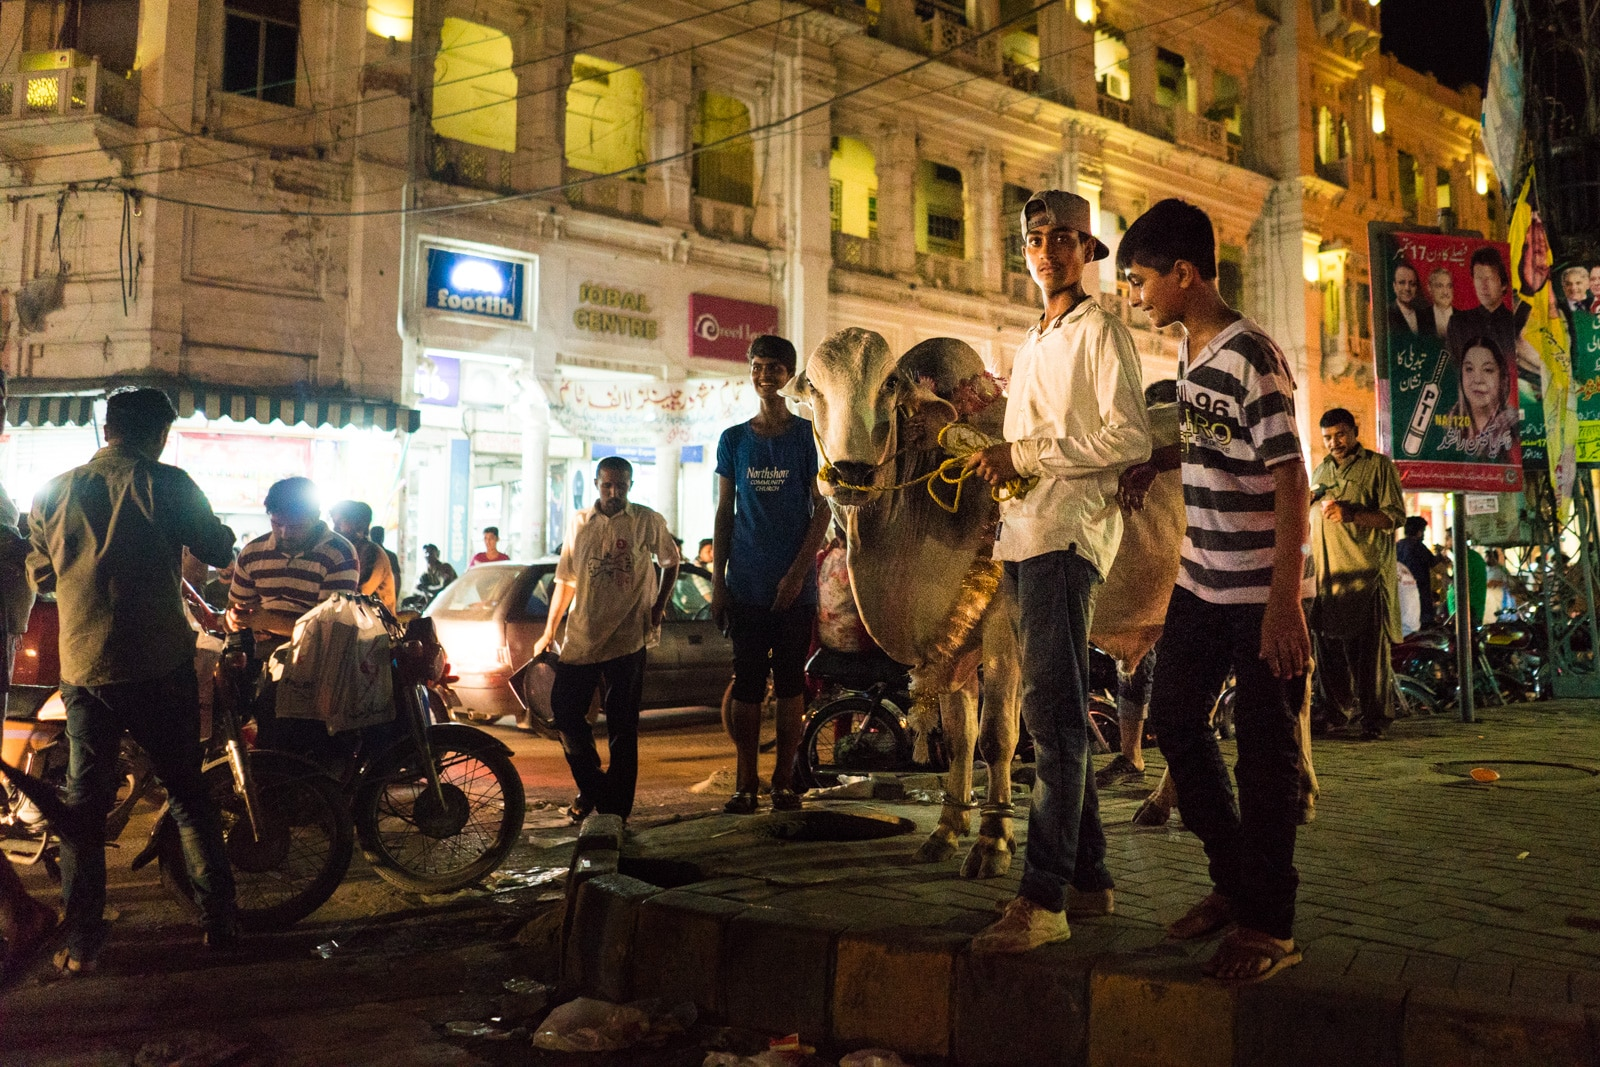 Celebrating Eid al-Adha in Lahore, Pakistan - Boys and a cow on Mall Road - Lost With Purpose travel blog